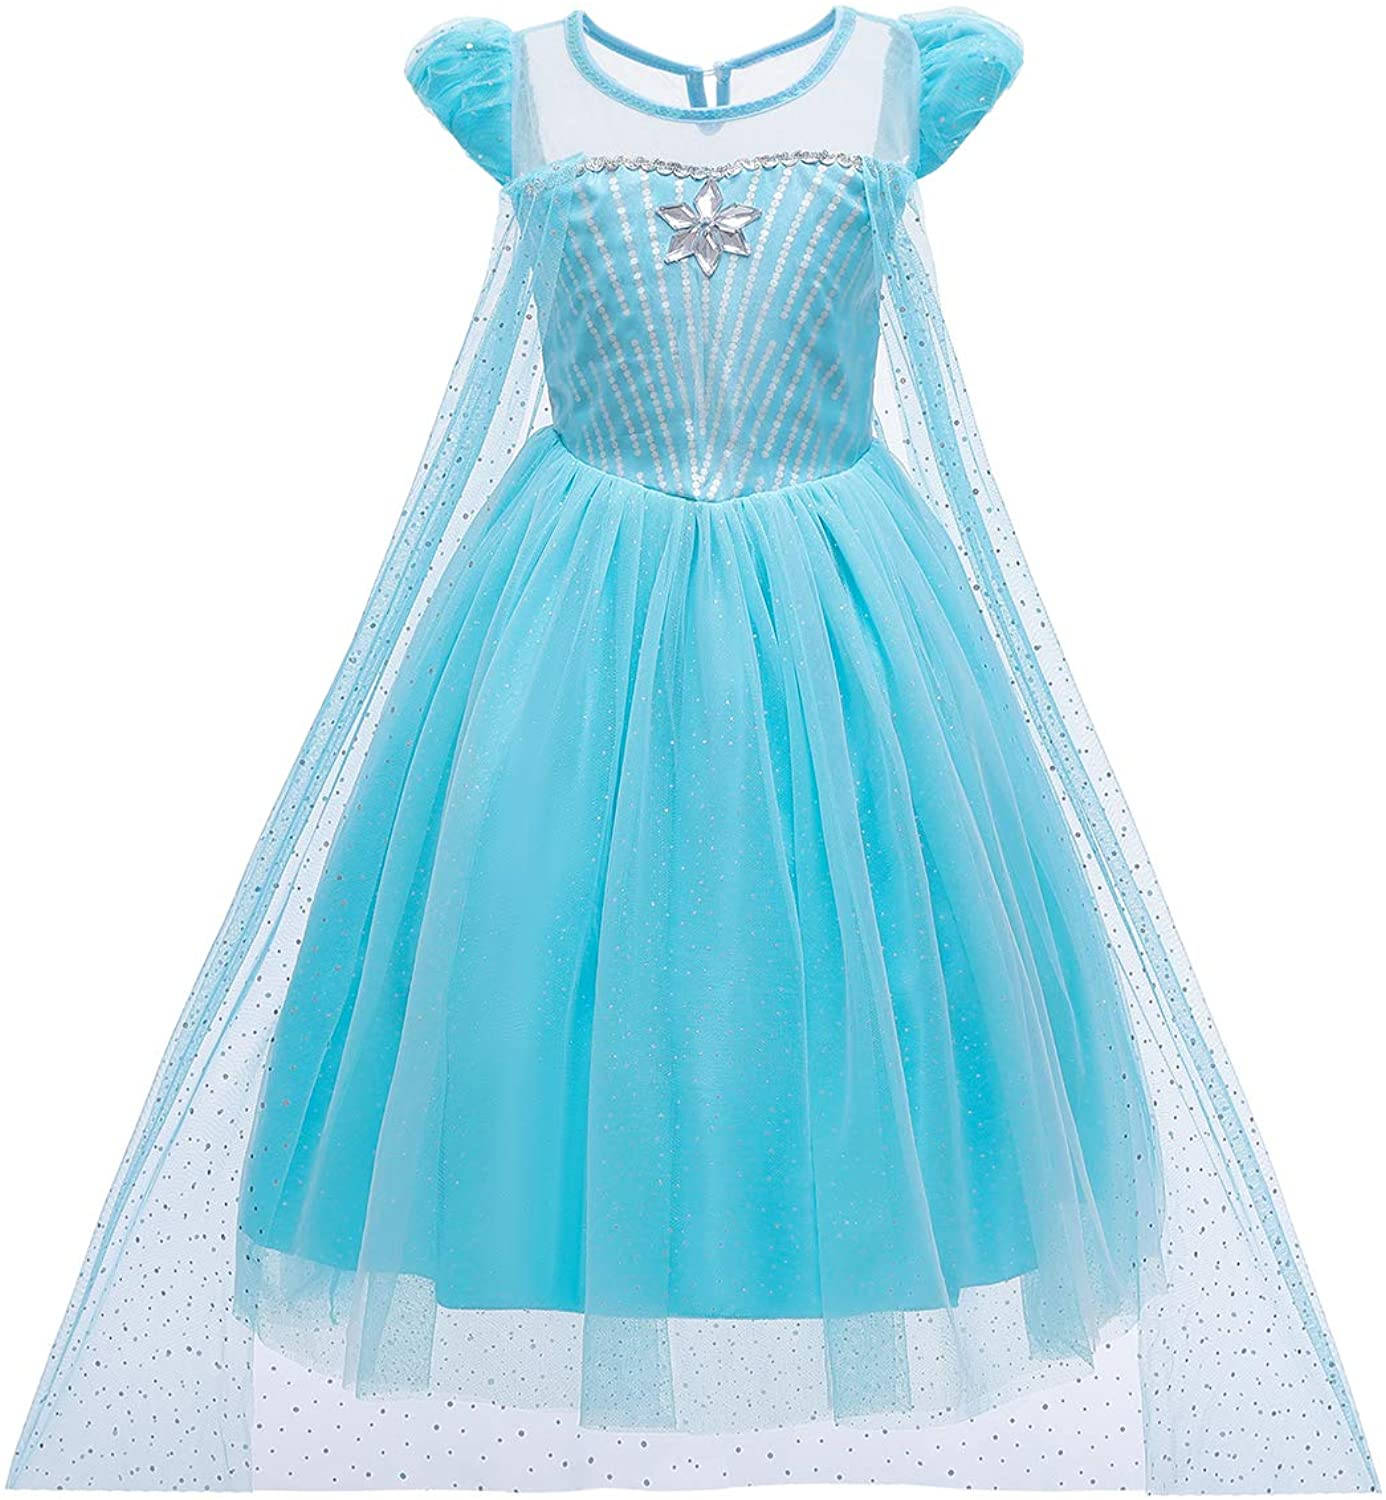 Tussclevogue Girls Princess Dress Costume- Snow Queen Party Birthday Dress Up for Toddler